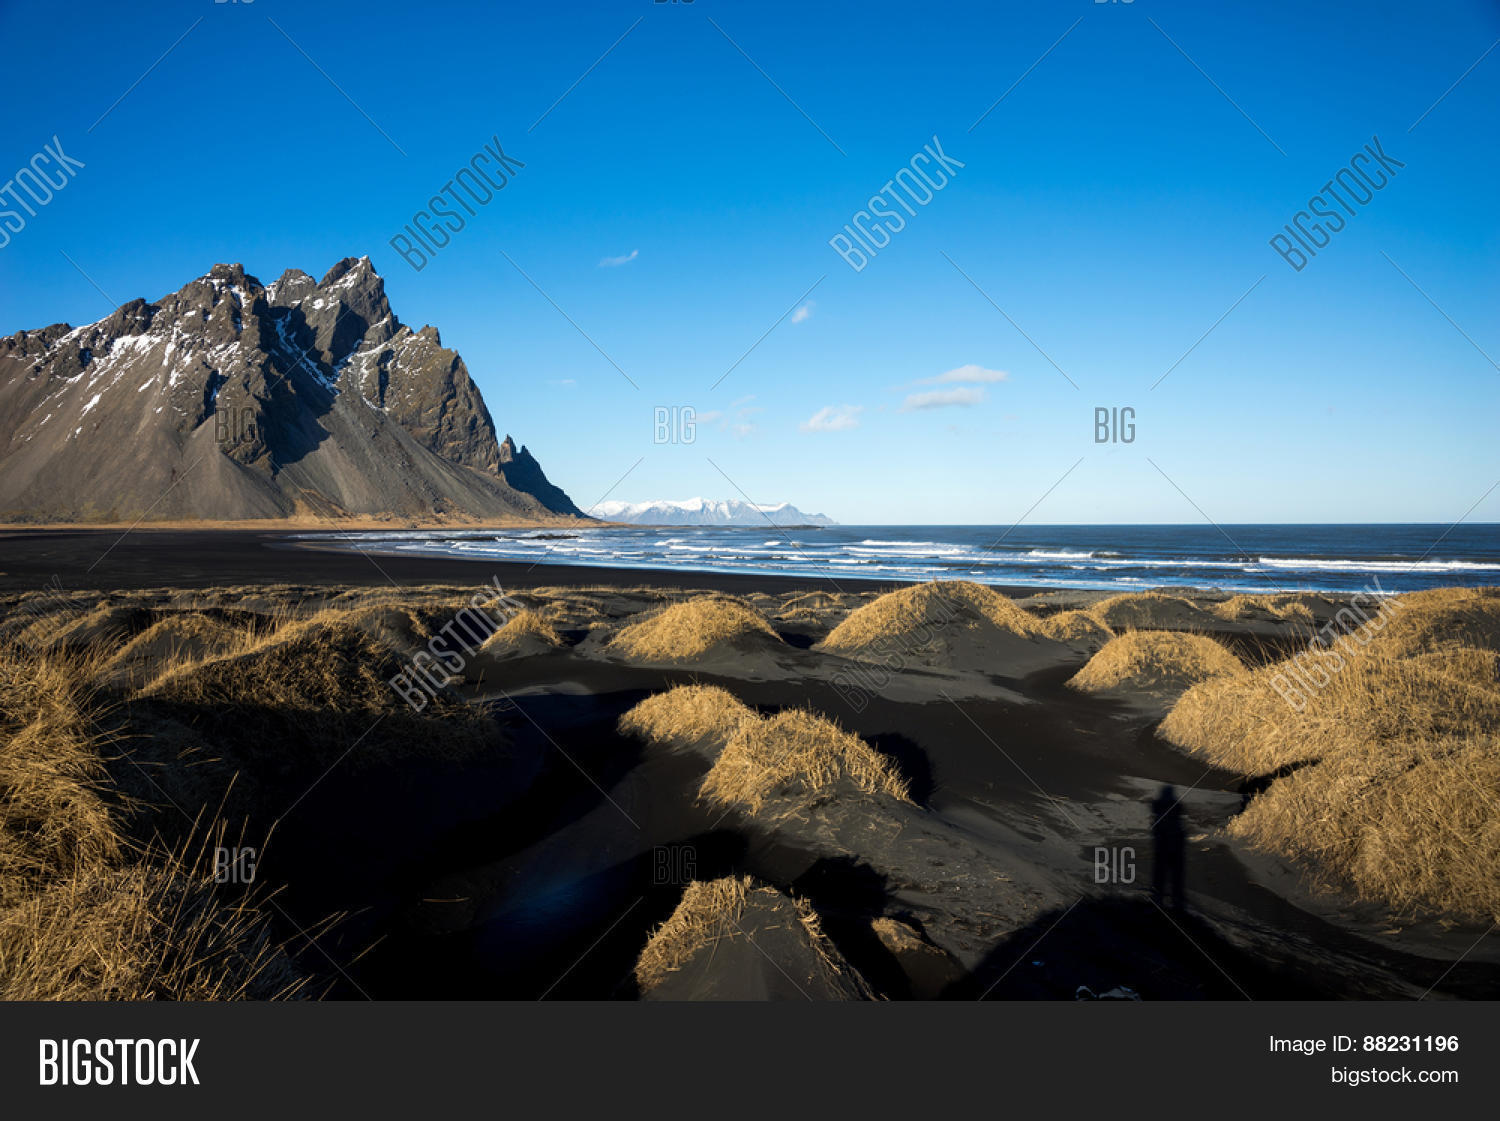 Spring Comes To Dunes >> Mountains Volcanic Image Photo Free Trial Bigstock